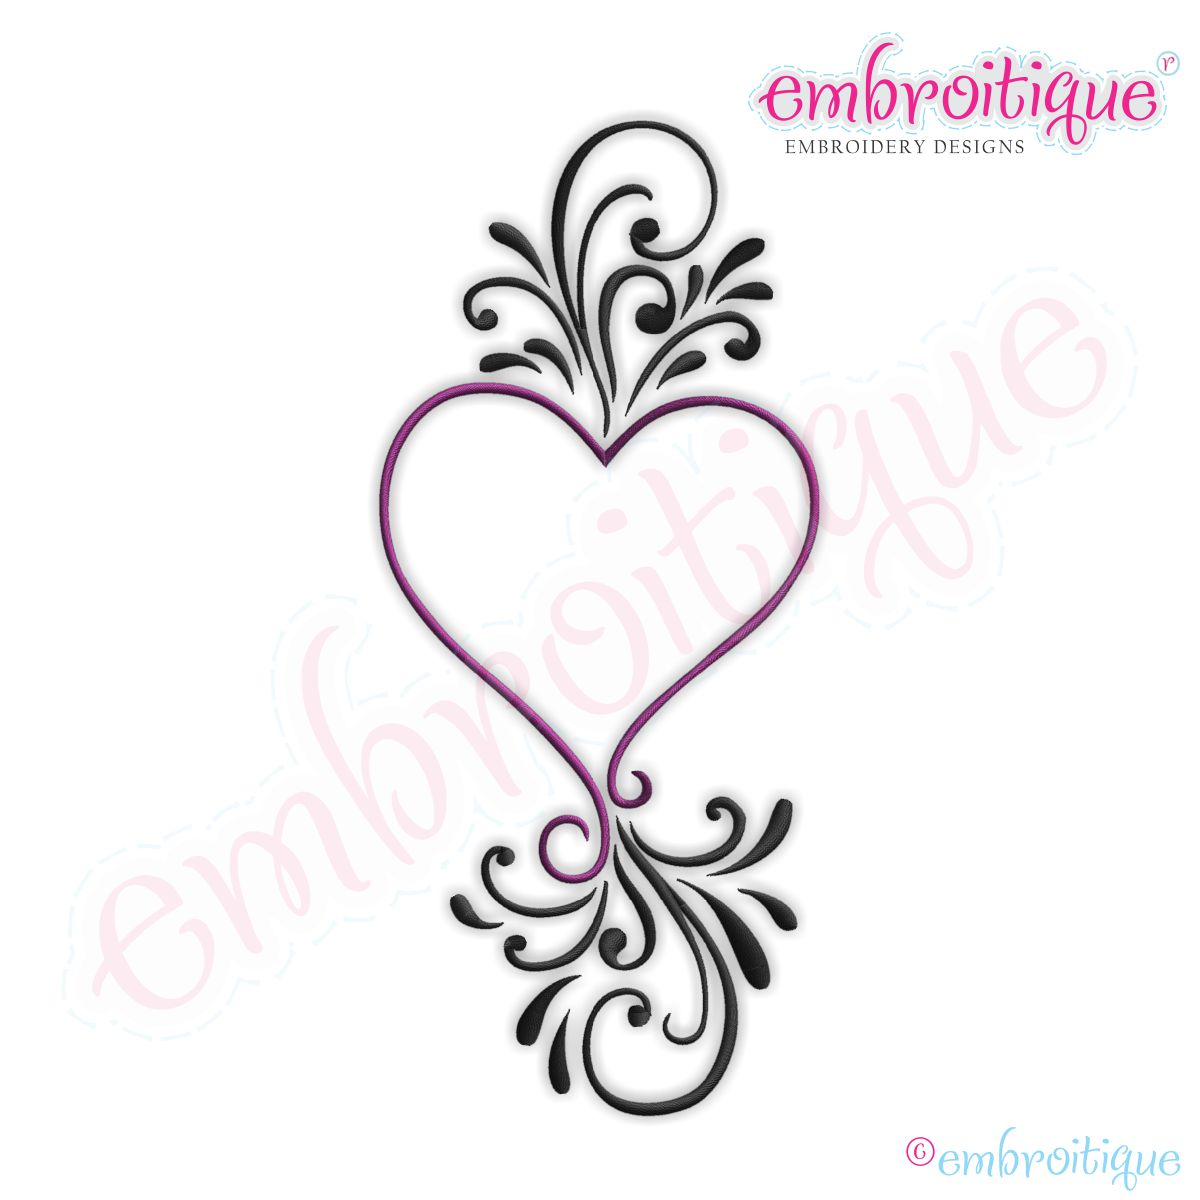 Embroitique Fanciful Flourished Heart Embroidery Design  Small